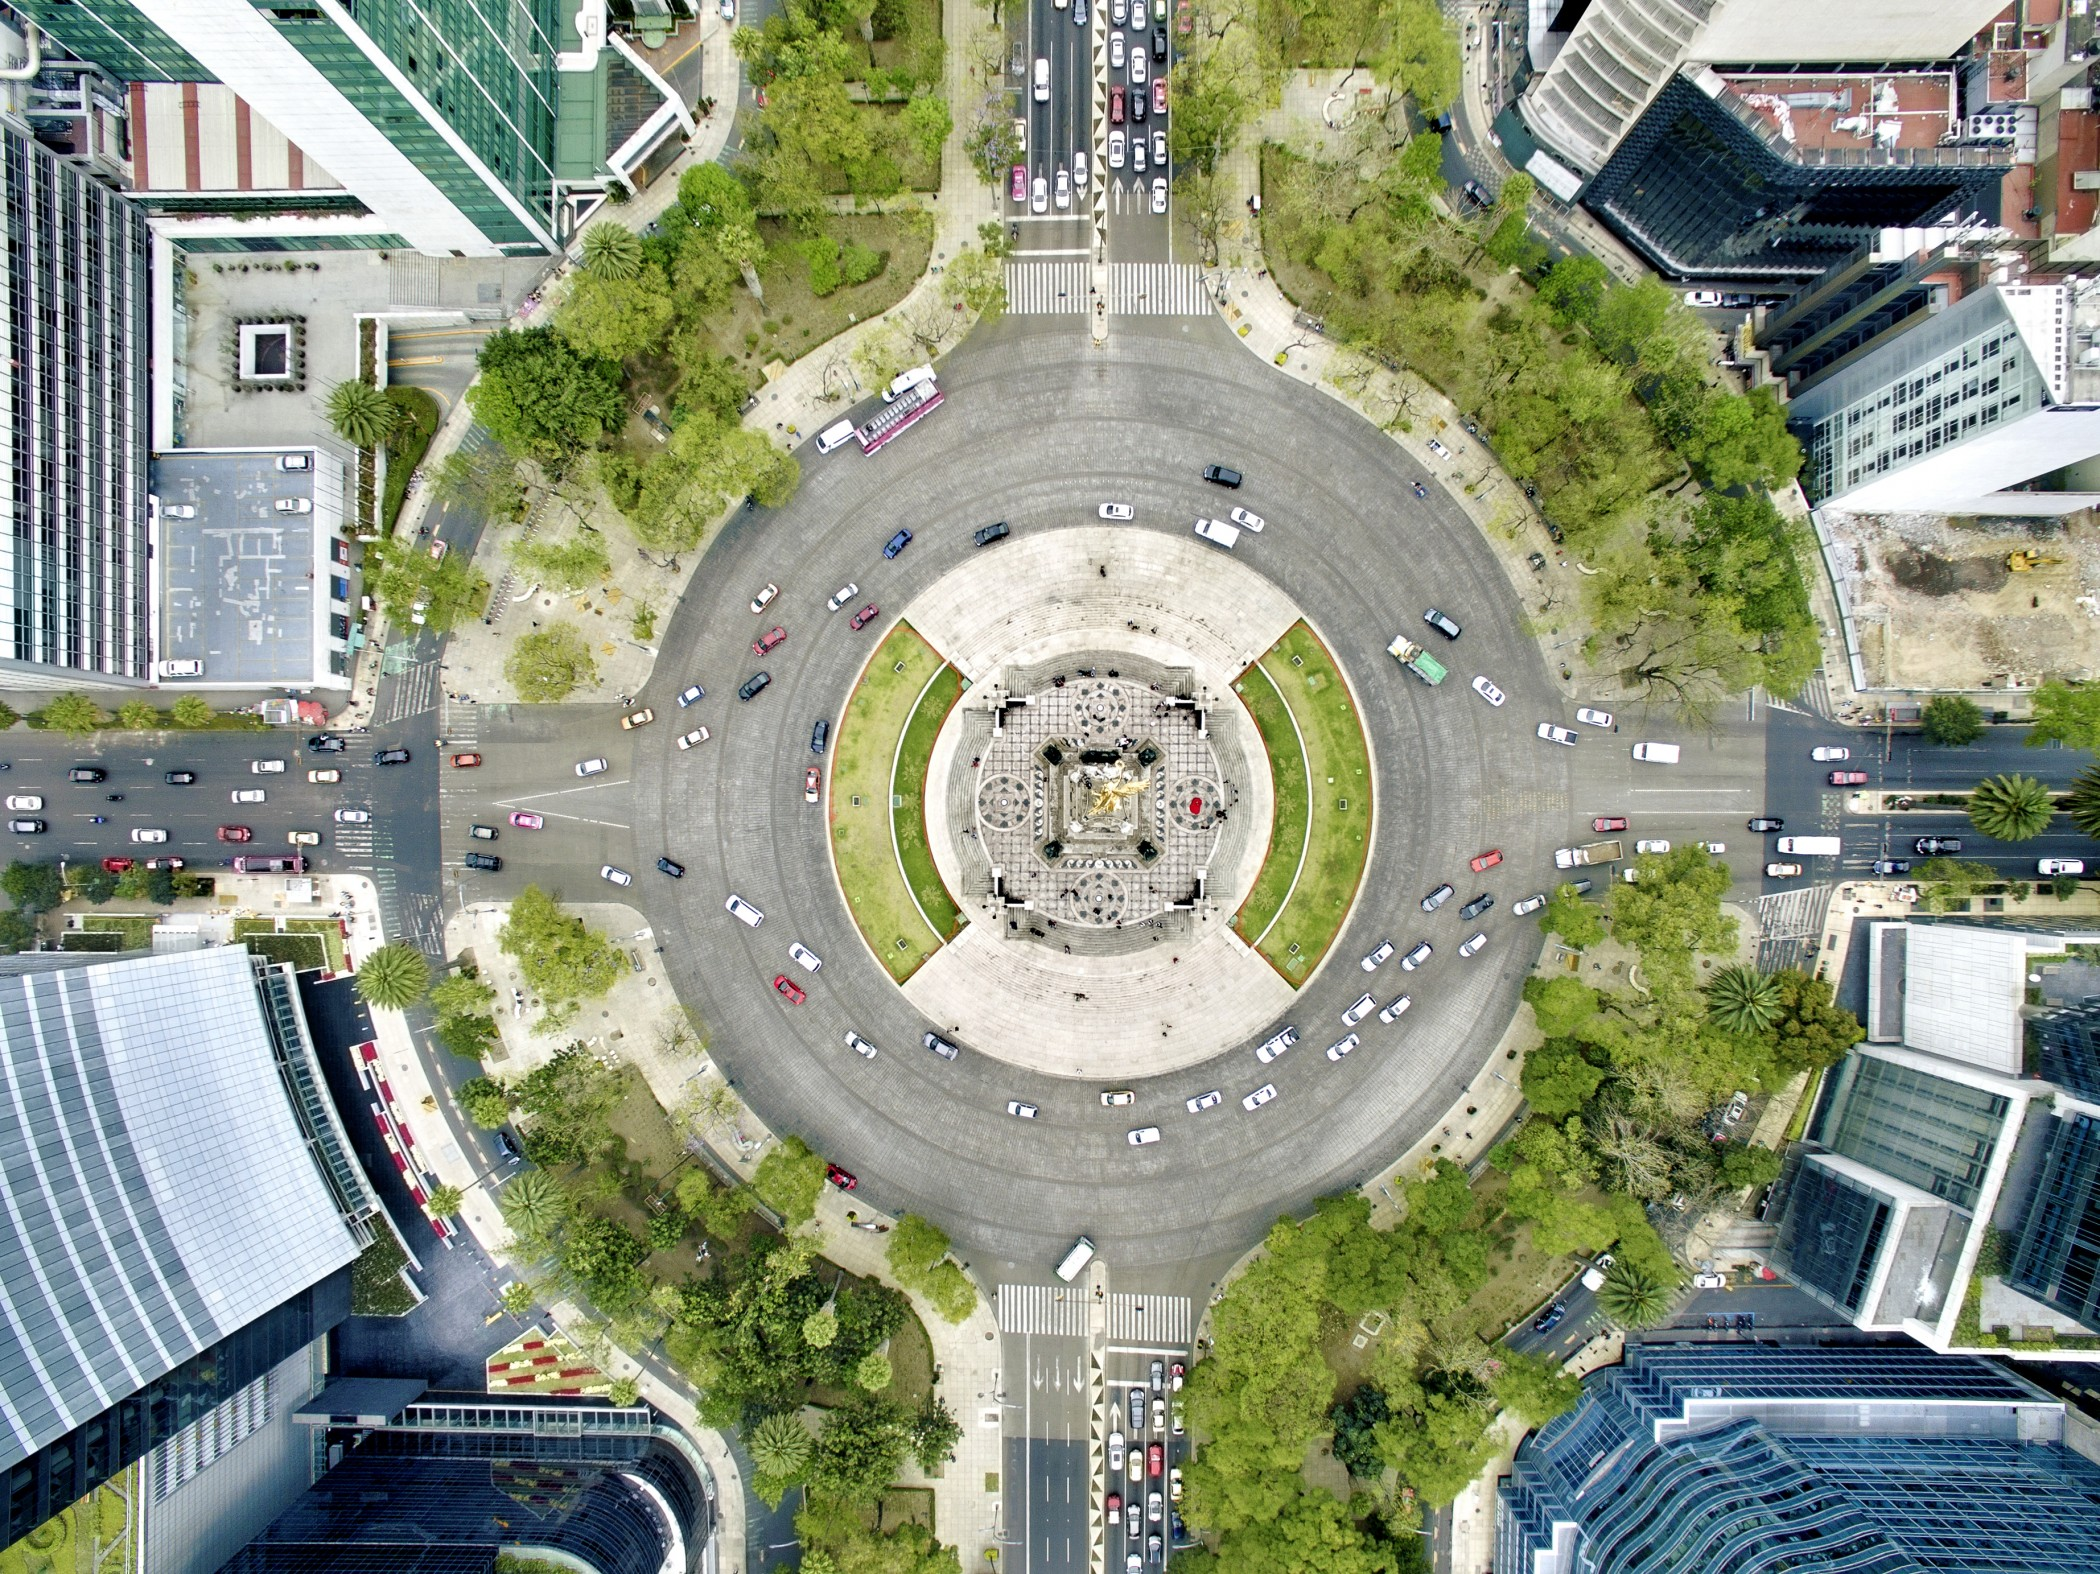 Aerial view of Independence monument in Mexico City